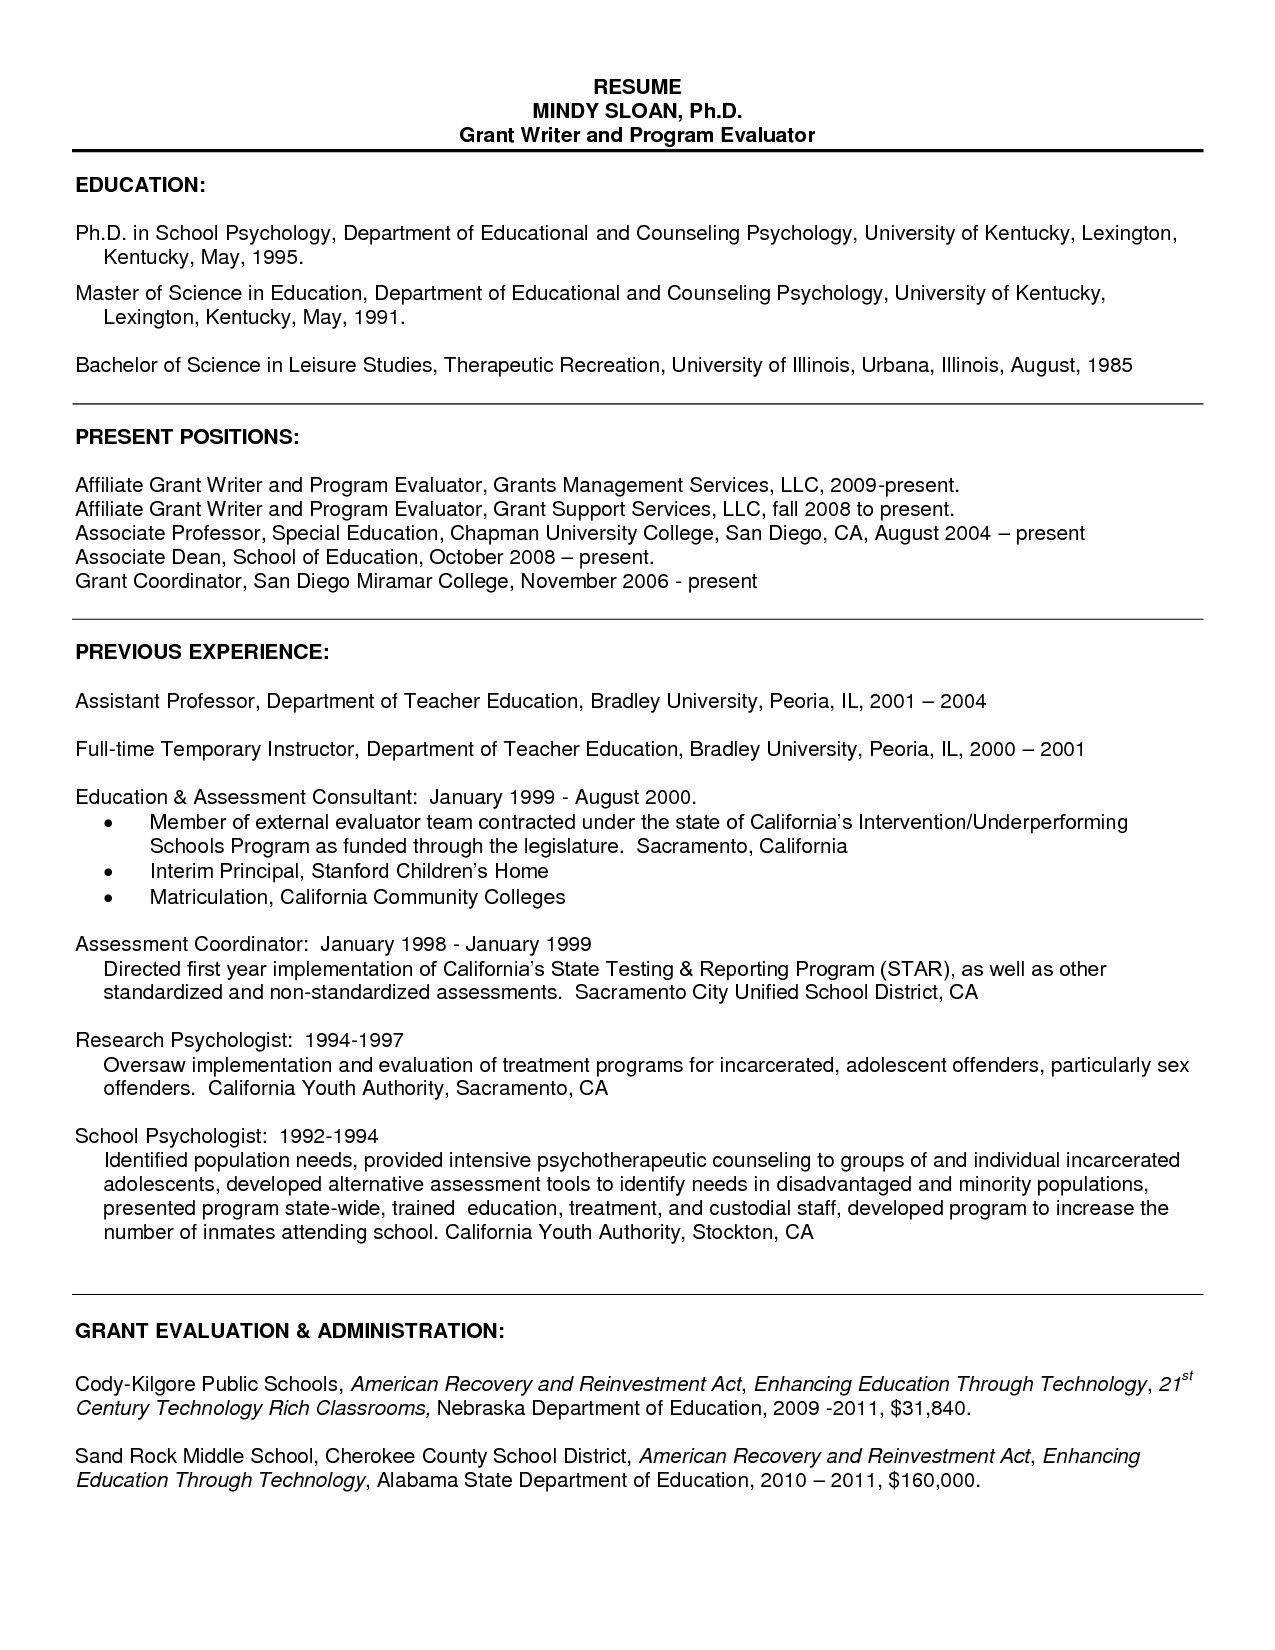 sle resume for psychology graduate http